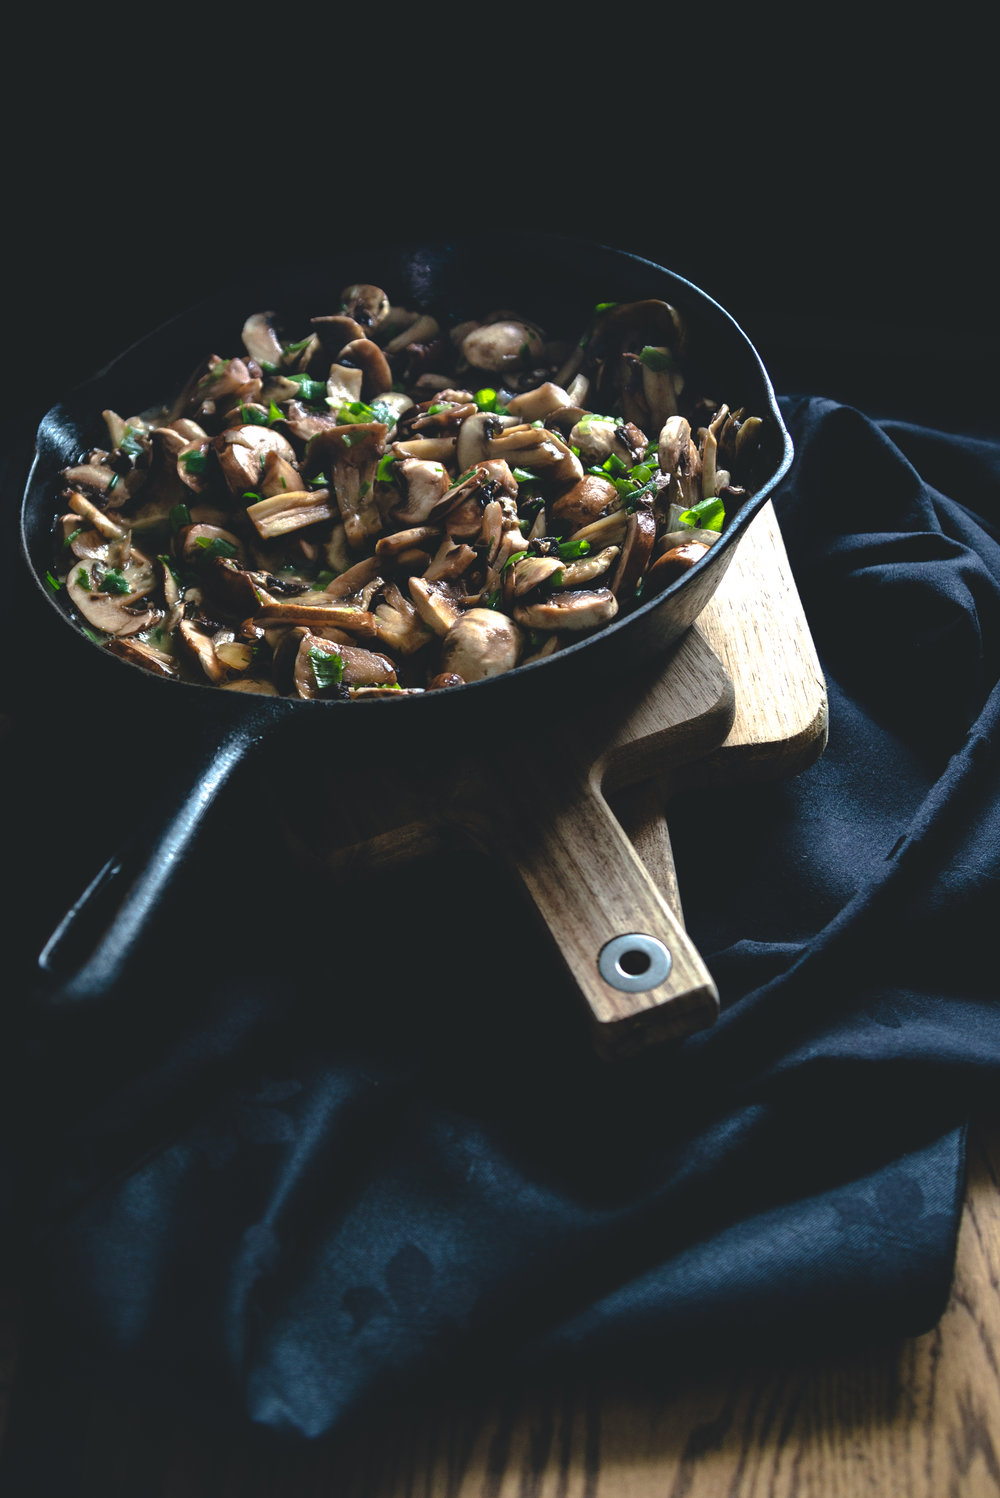 Thyme and a touch of white wine will make mushrooms sing. You can stir these flavorful mushrooms into rice pilaf, omelettes, or pasta.